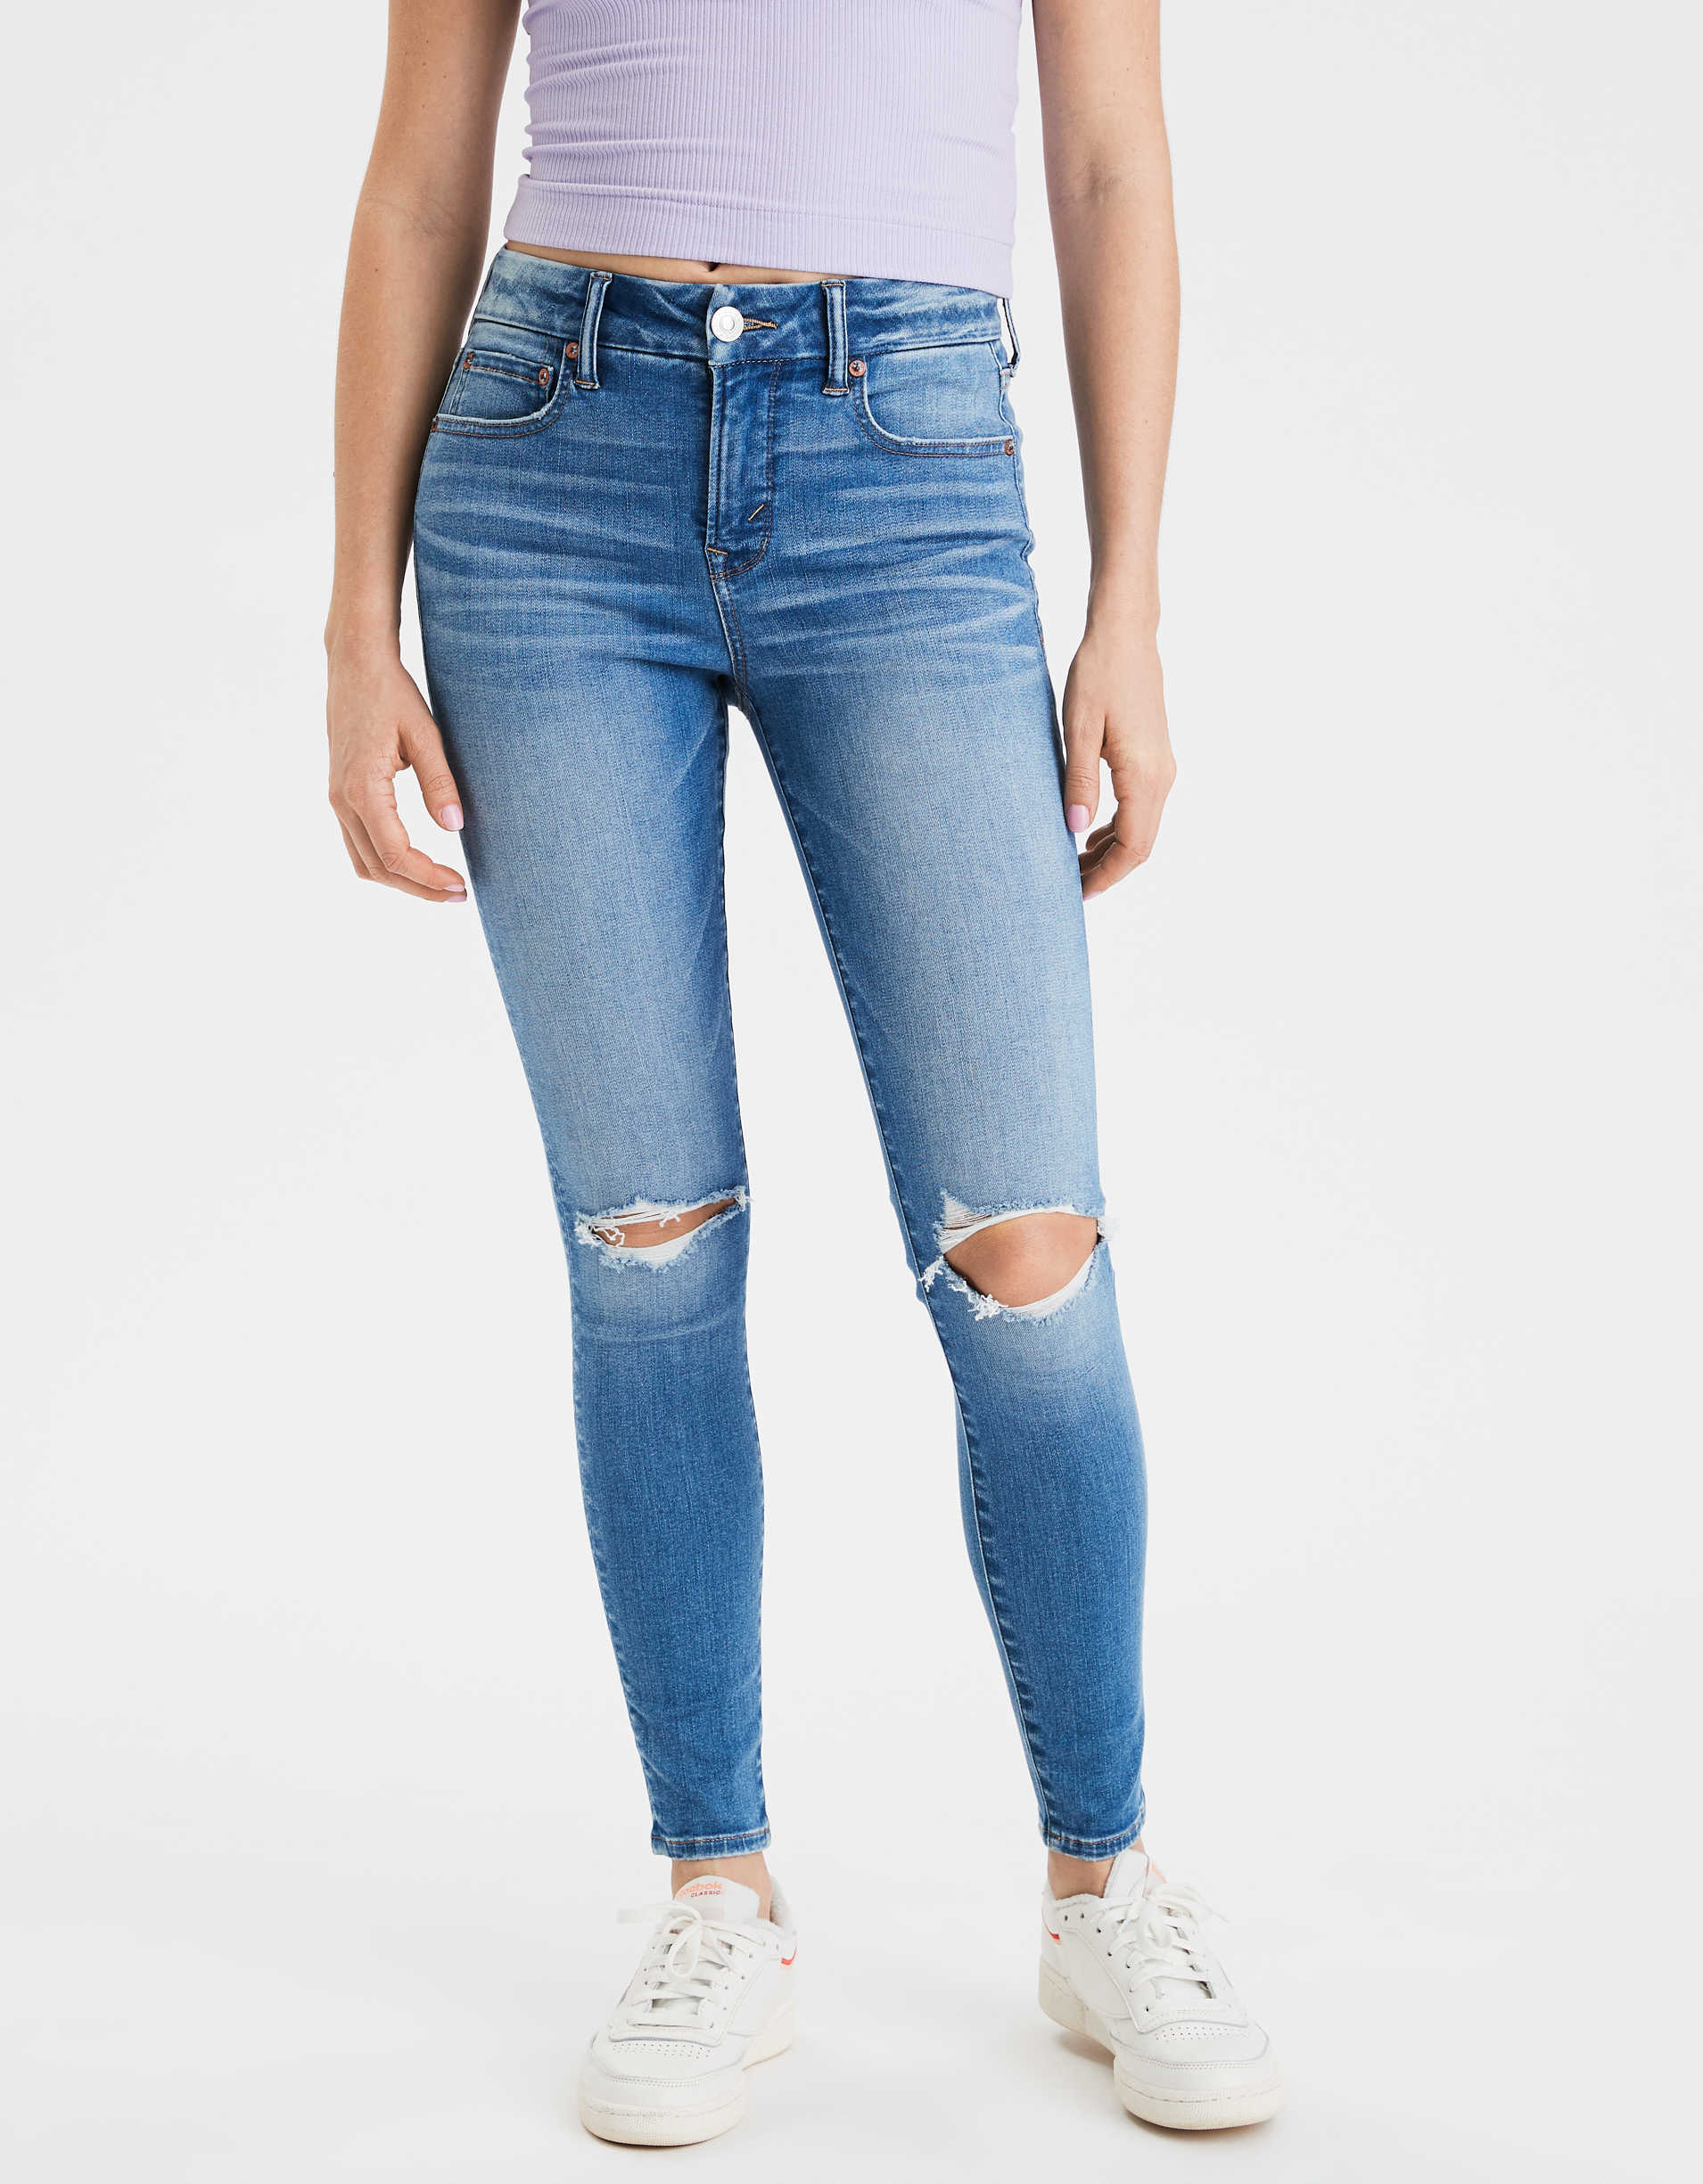 The Lu(X)e Jean High-Waisted Jegging